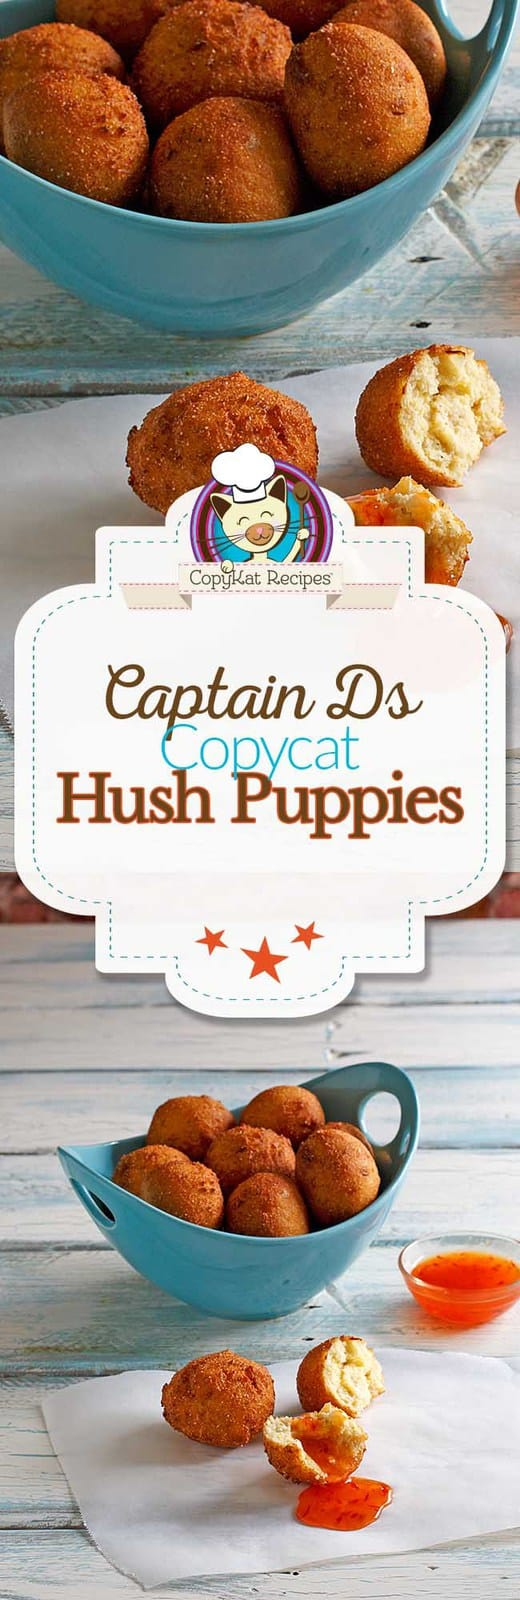 You can recreate Captain Ds hush puppies at home with this copycat recipe.